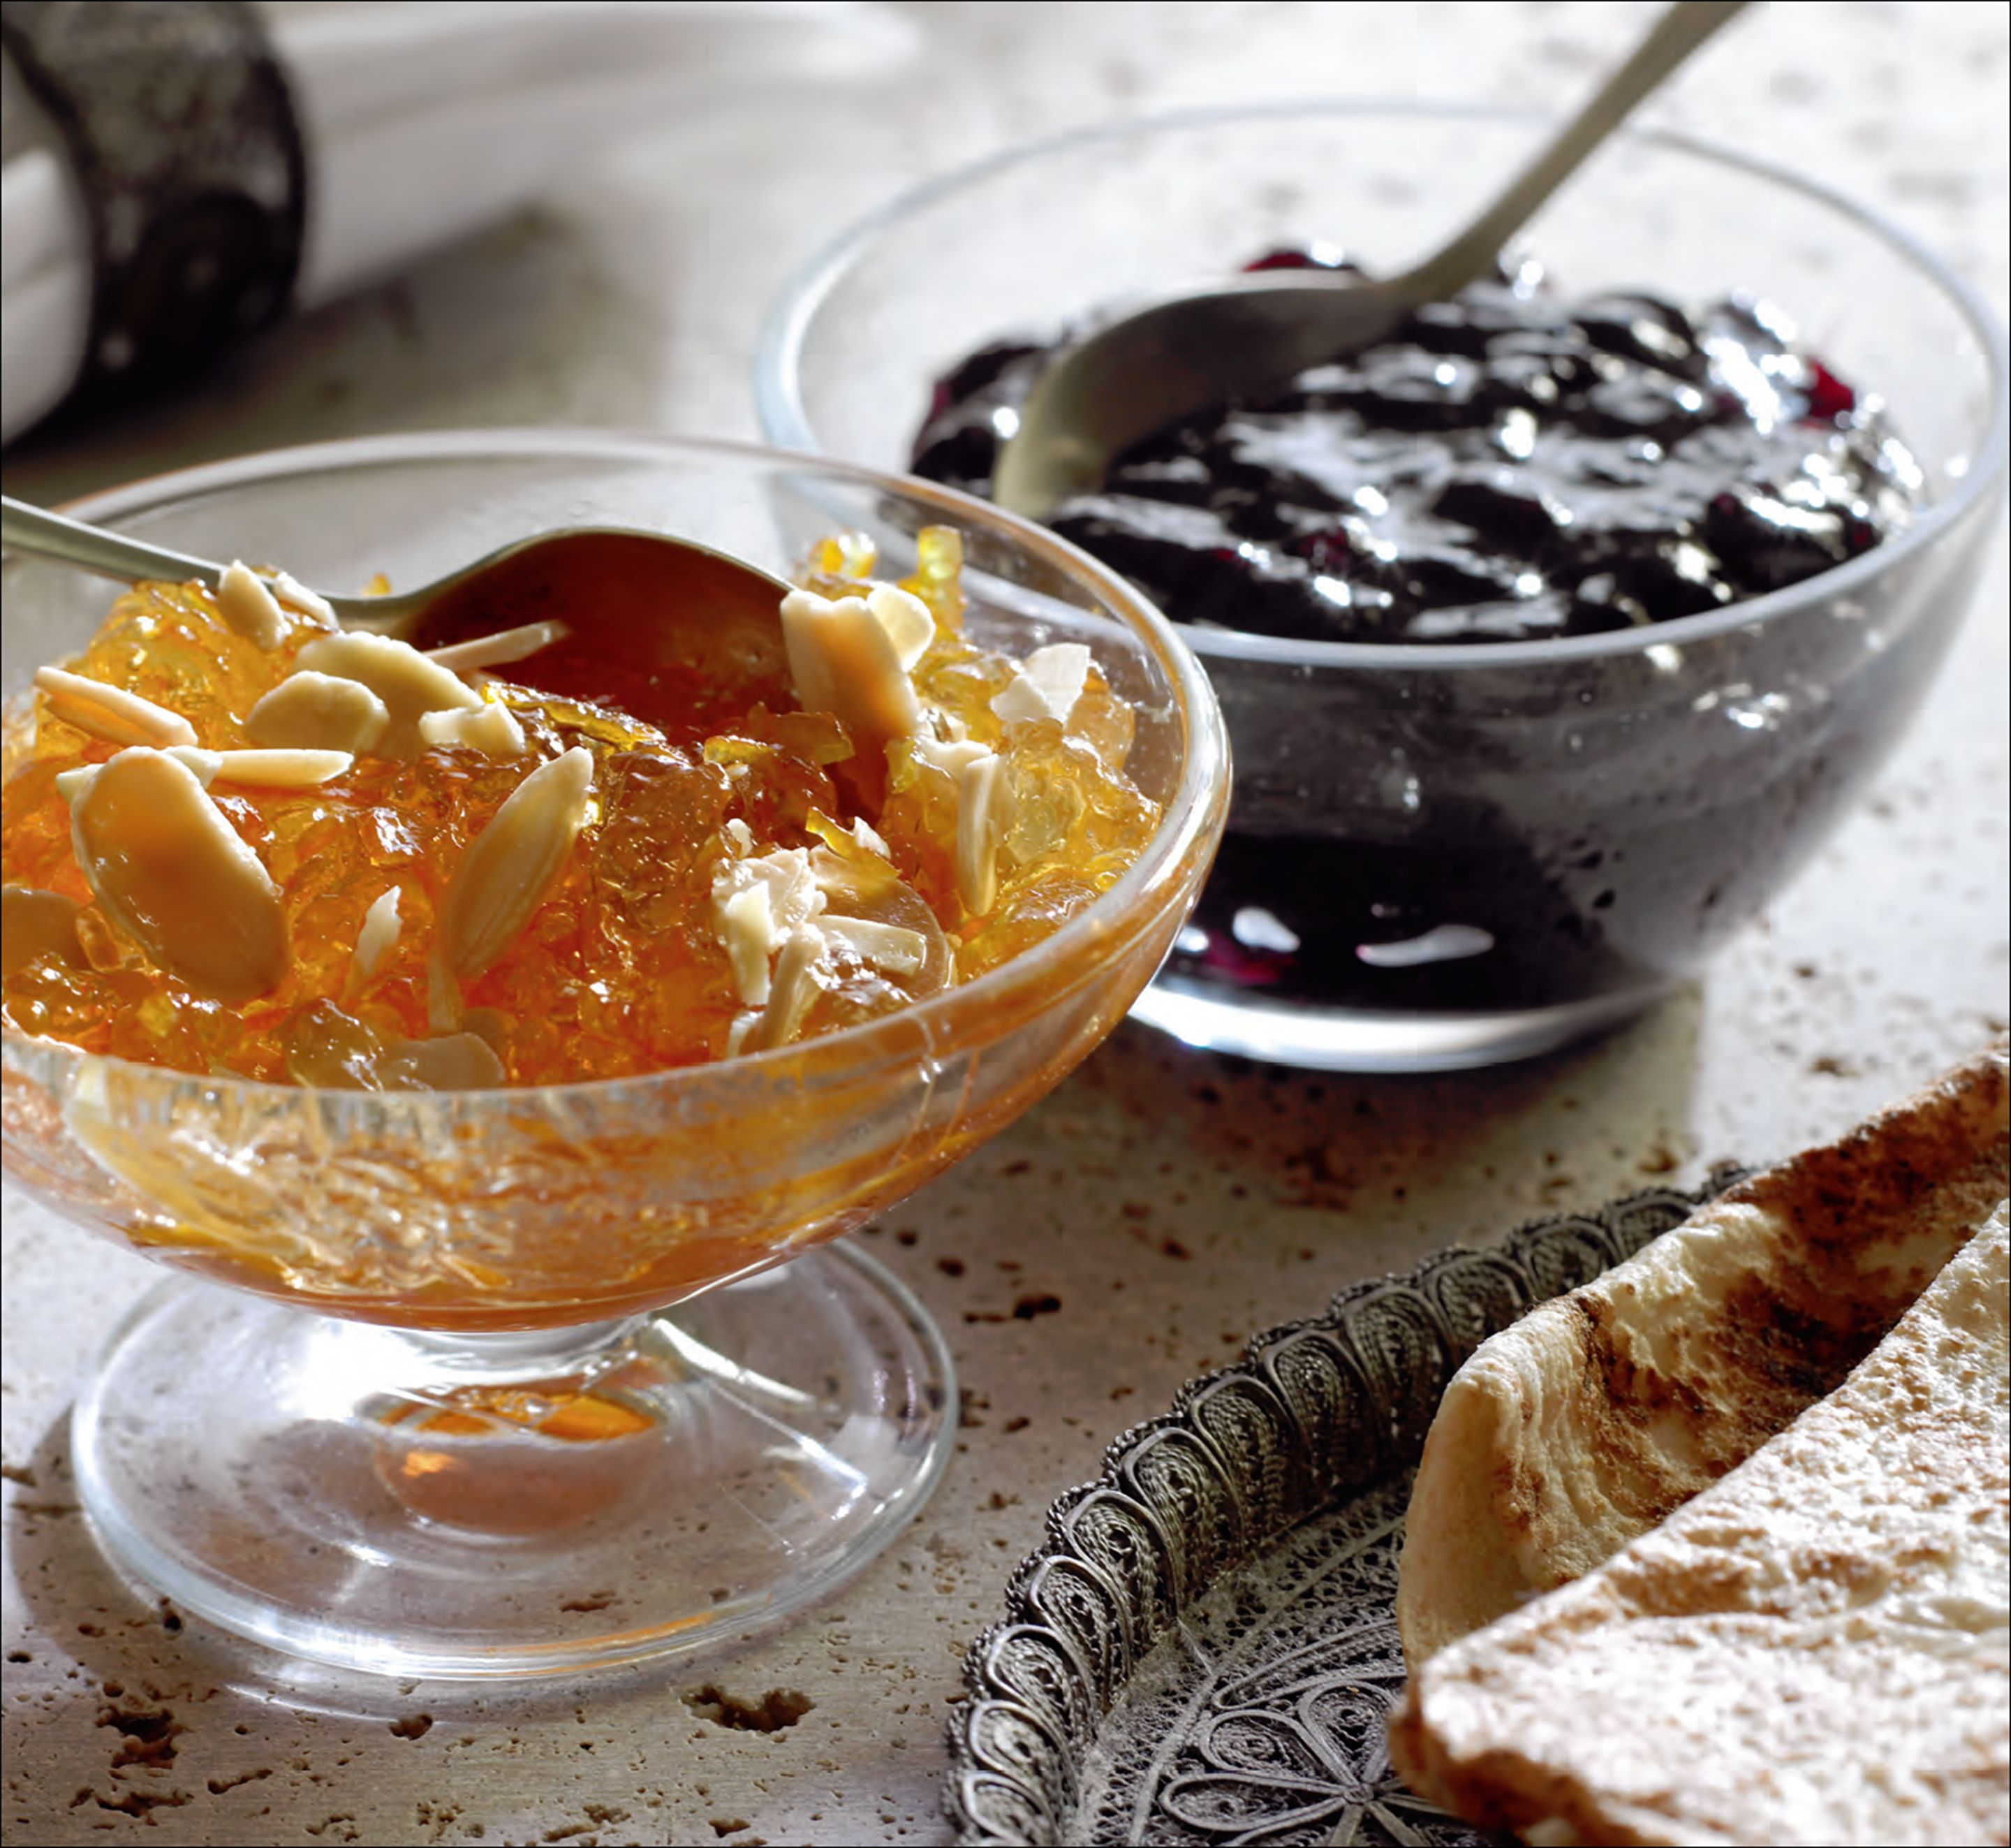 Bitter orange marmalade with rosewater and almonds